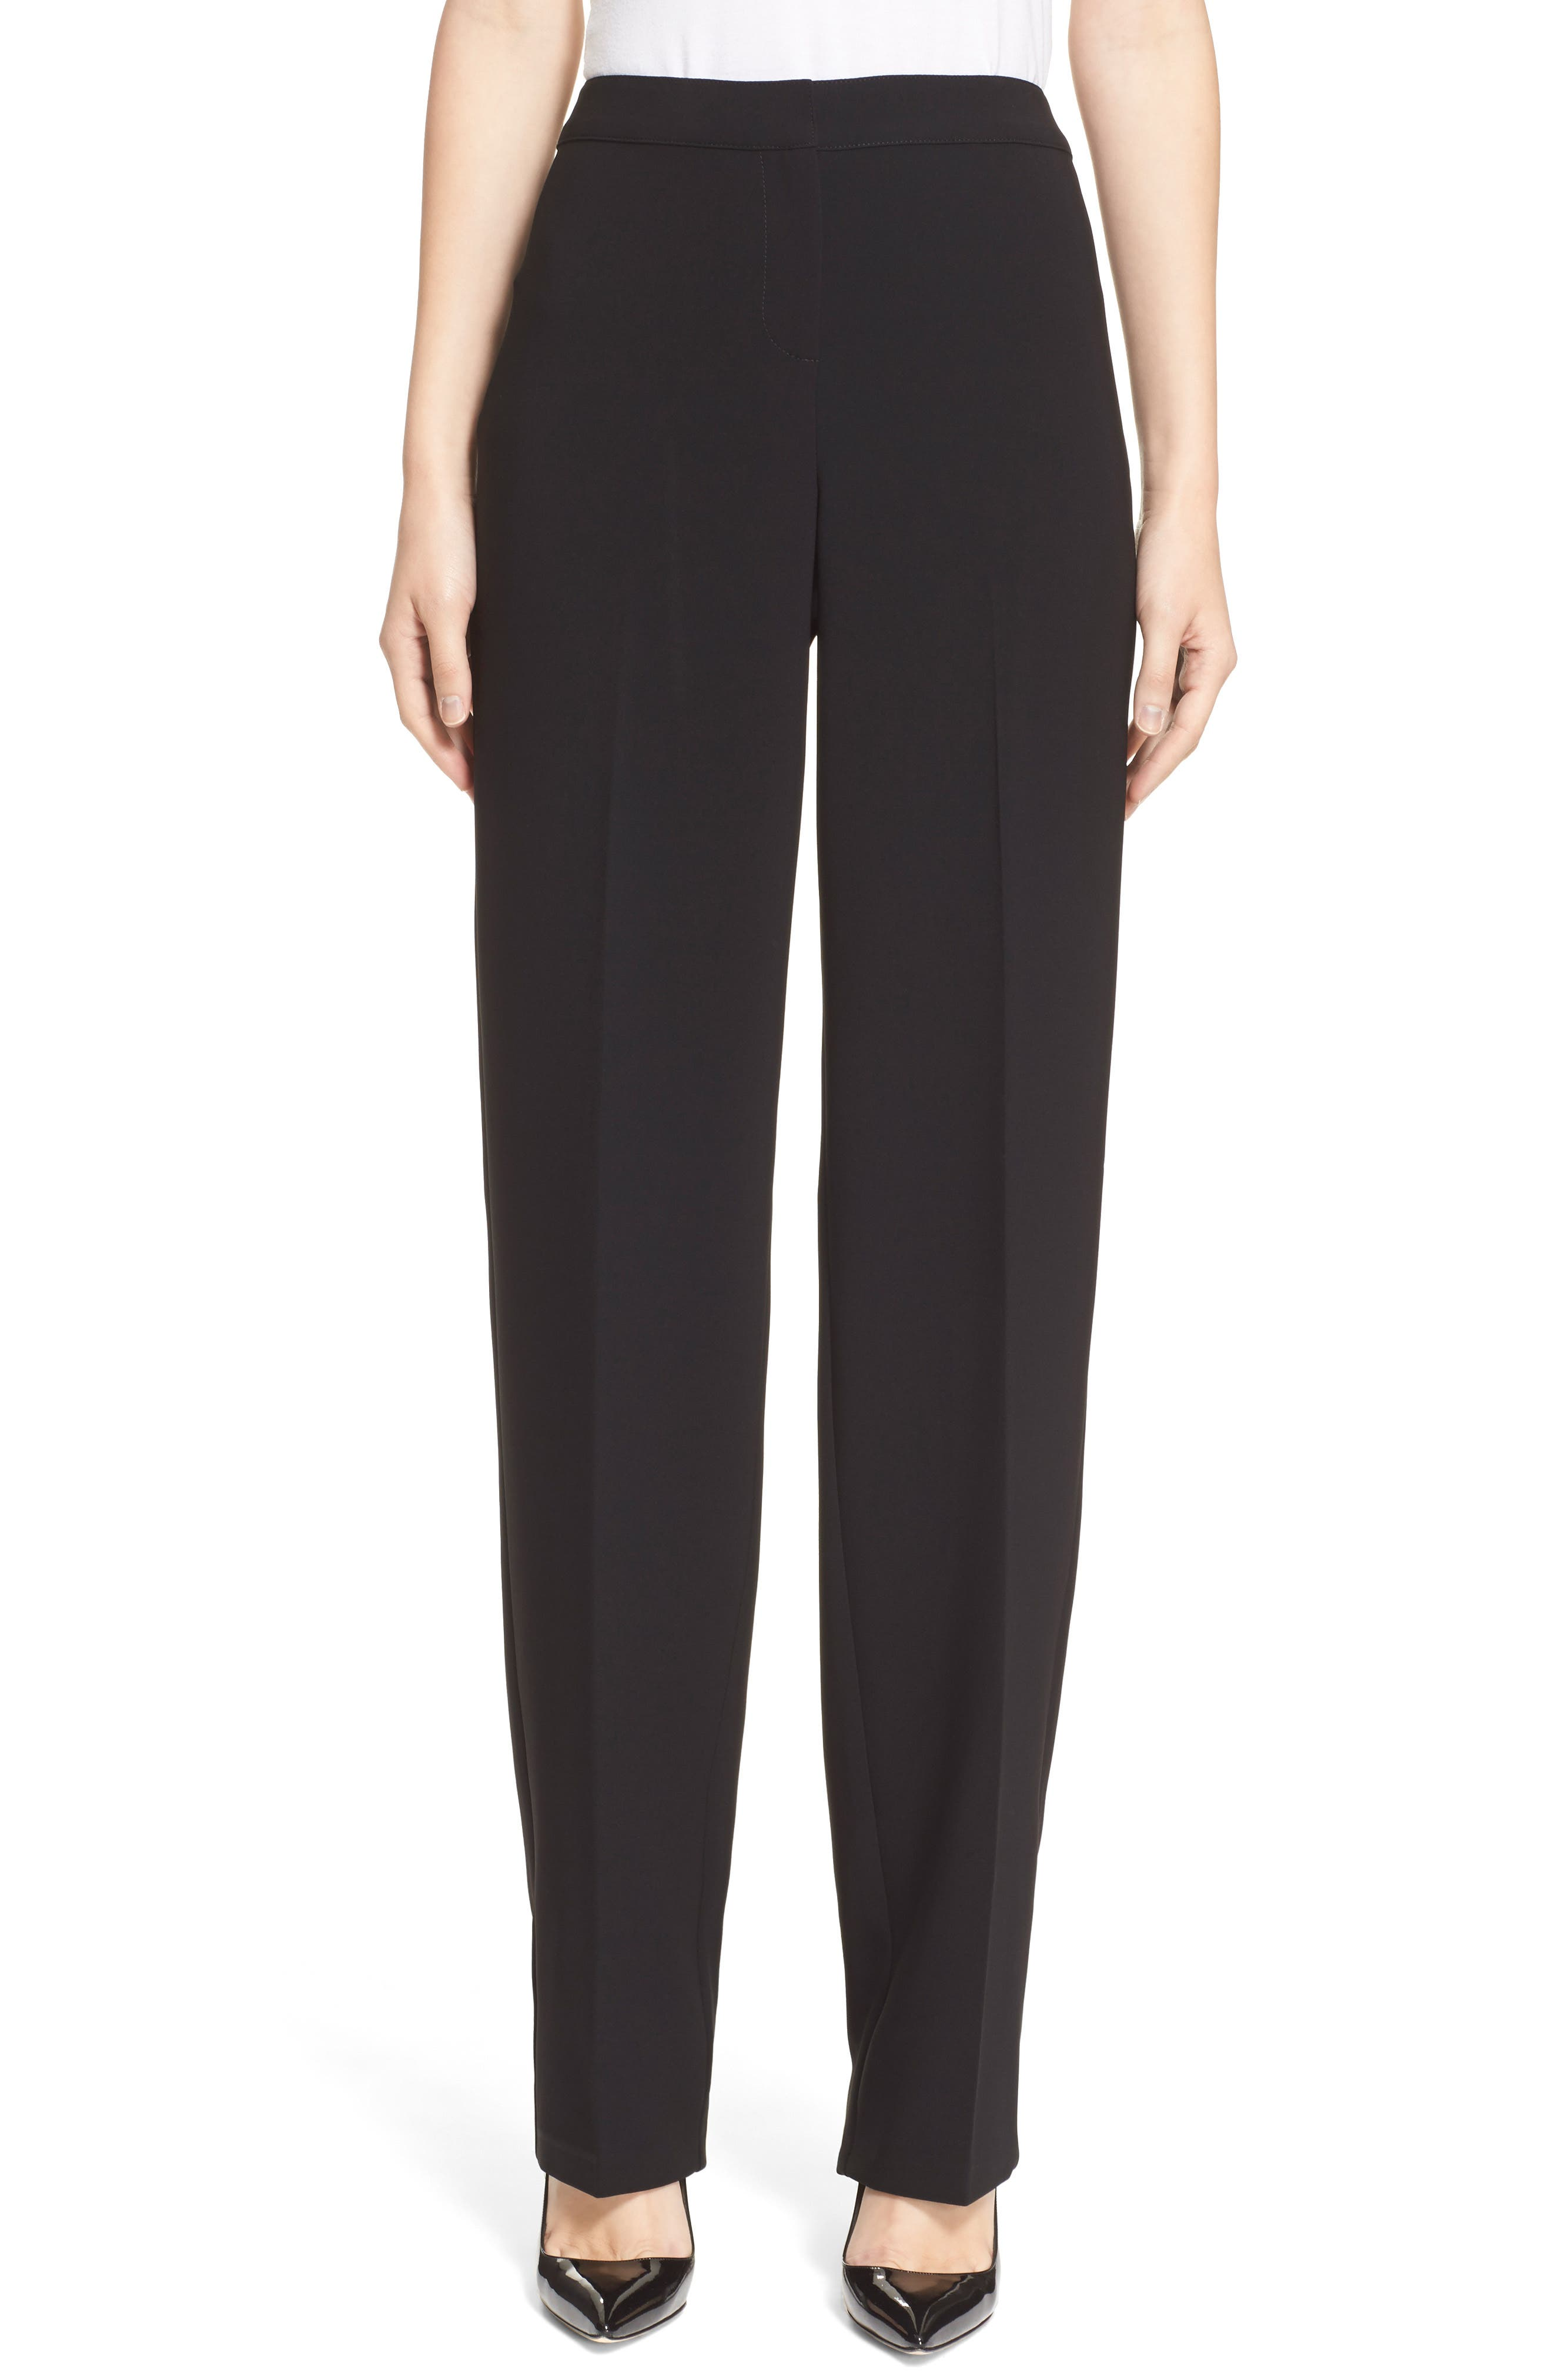 ST. JOHN COLLECTION, Diana Straight Leg Crepe Marocain Pants, Alternate thumbnail 2, color, CAVIAR